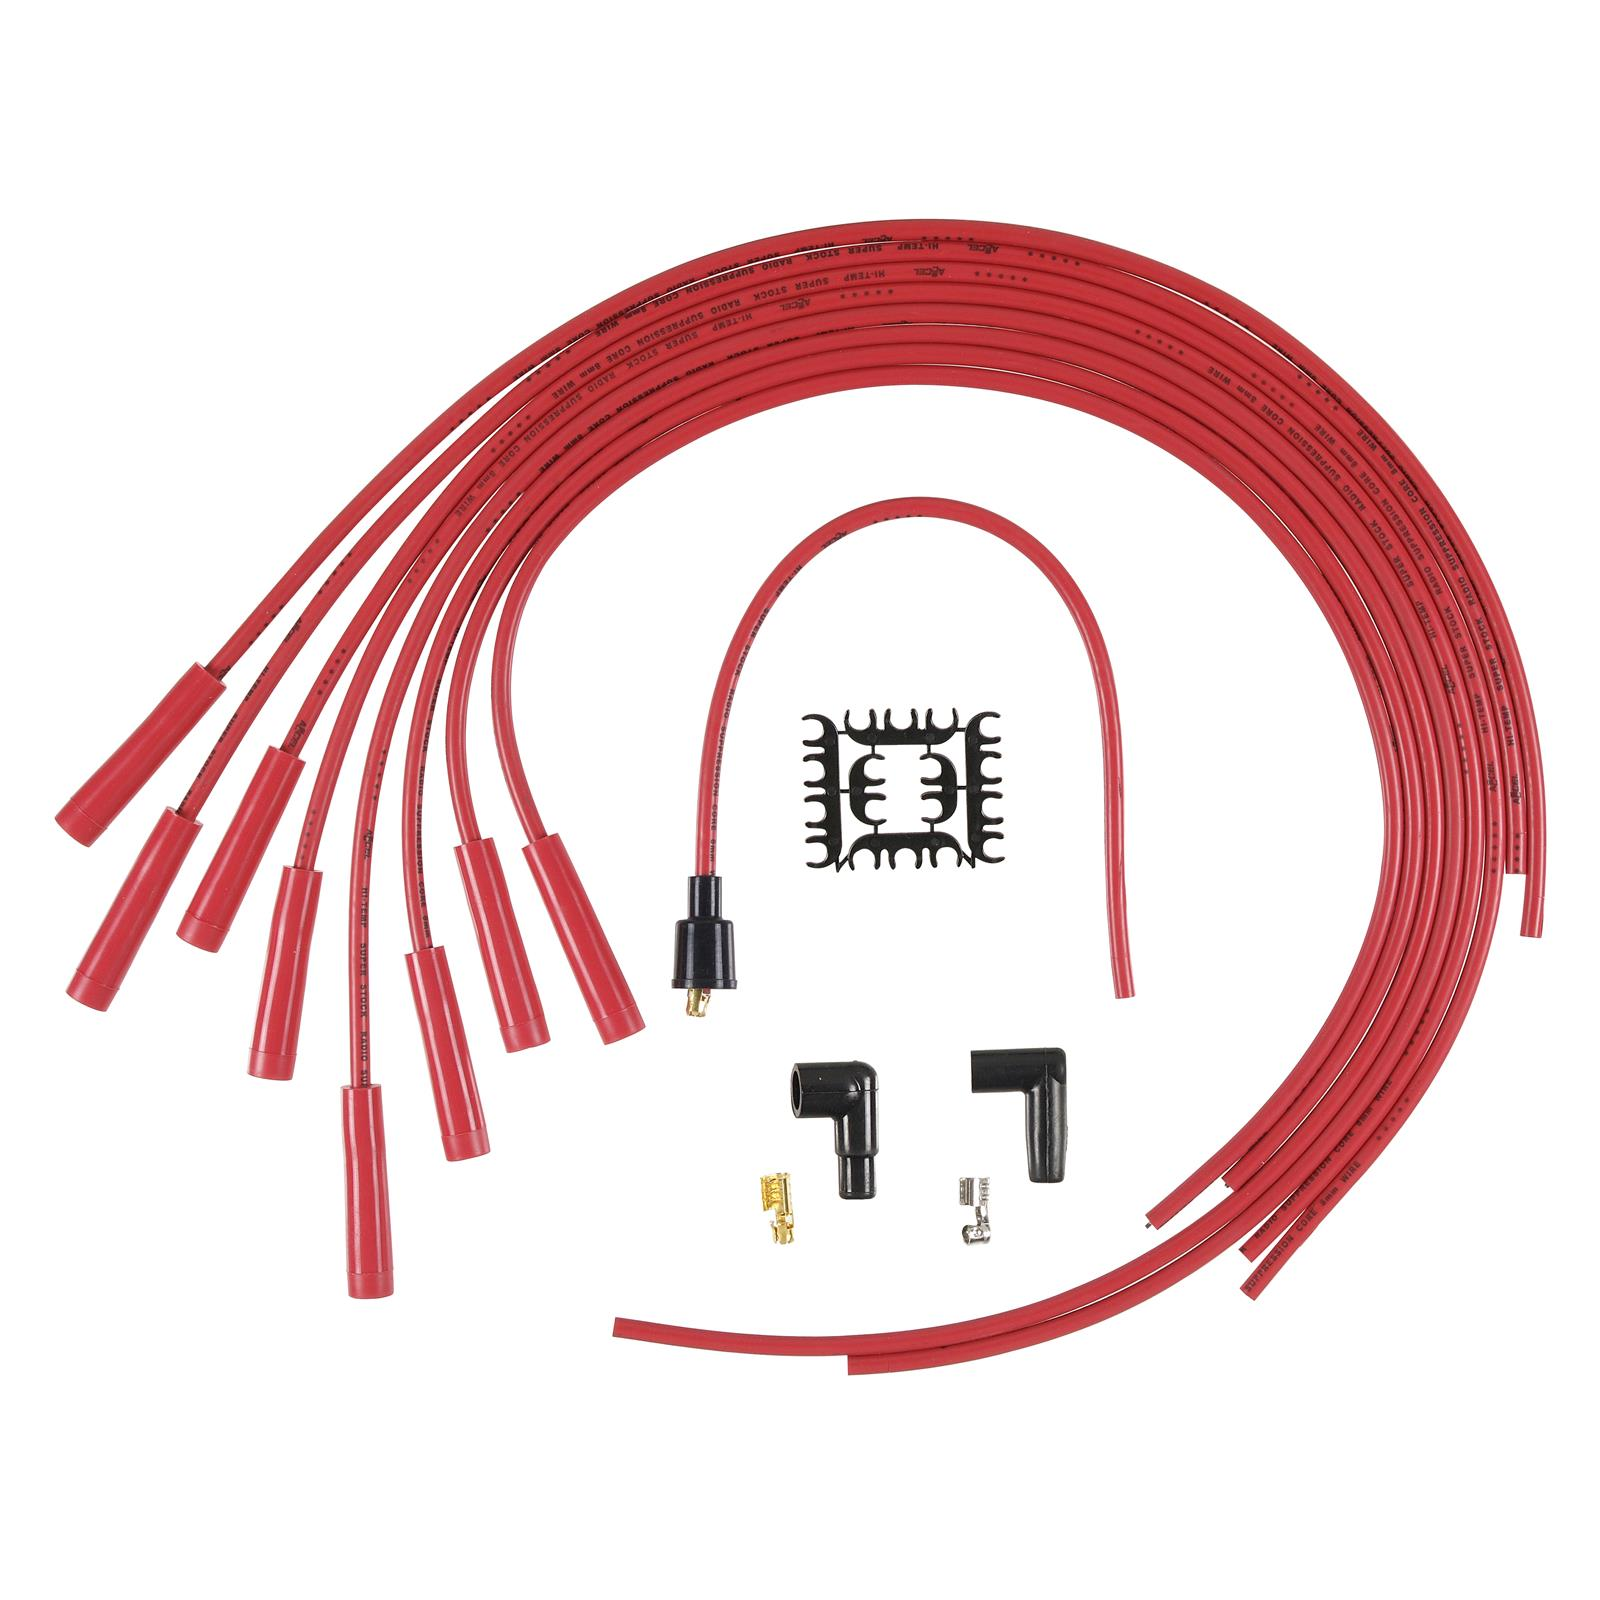 Accel Superstock 4000 Series Spark Plug Wire Sets 4040r Free Ignition Circuit Diagram For The 1949 54 Nash All Models Shipping On Orders Over 99 At Summit Racing